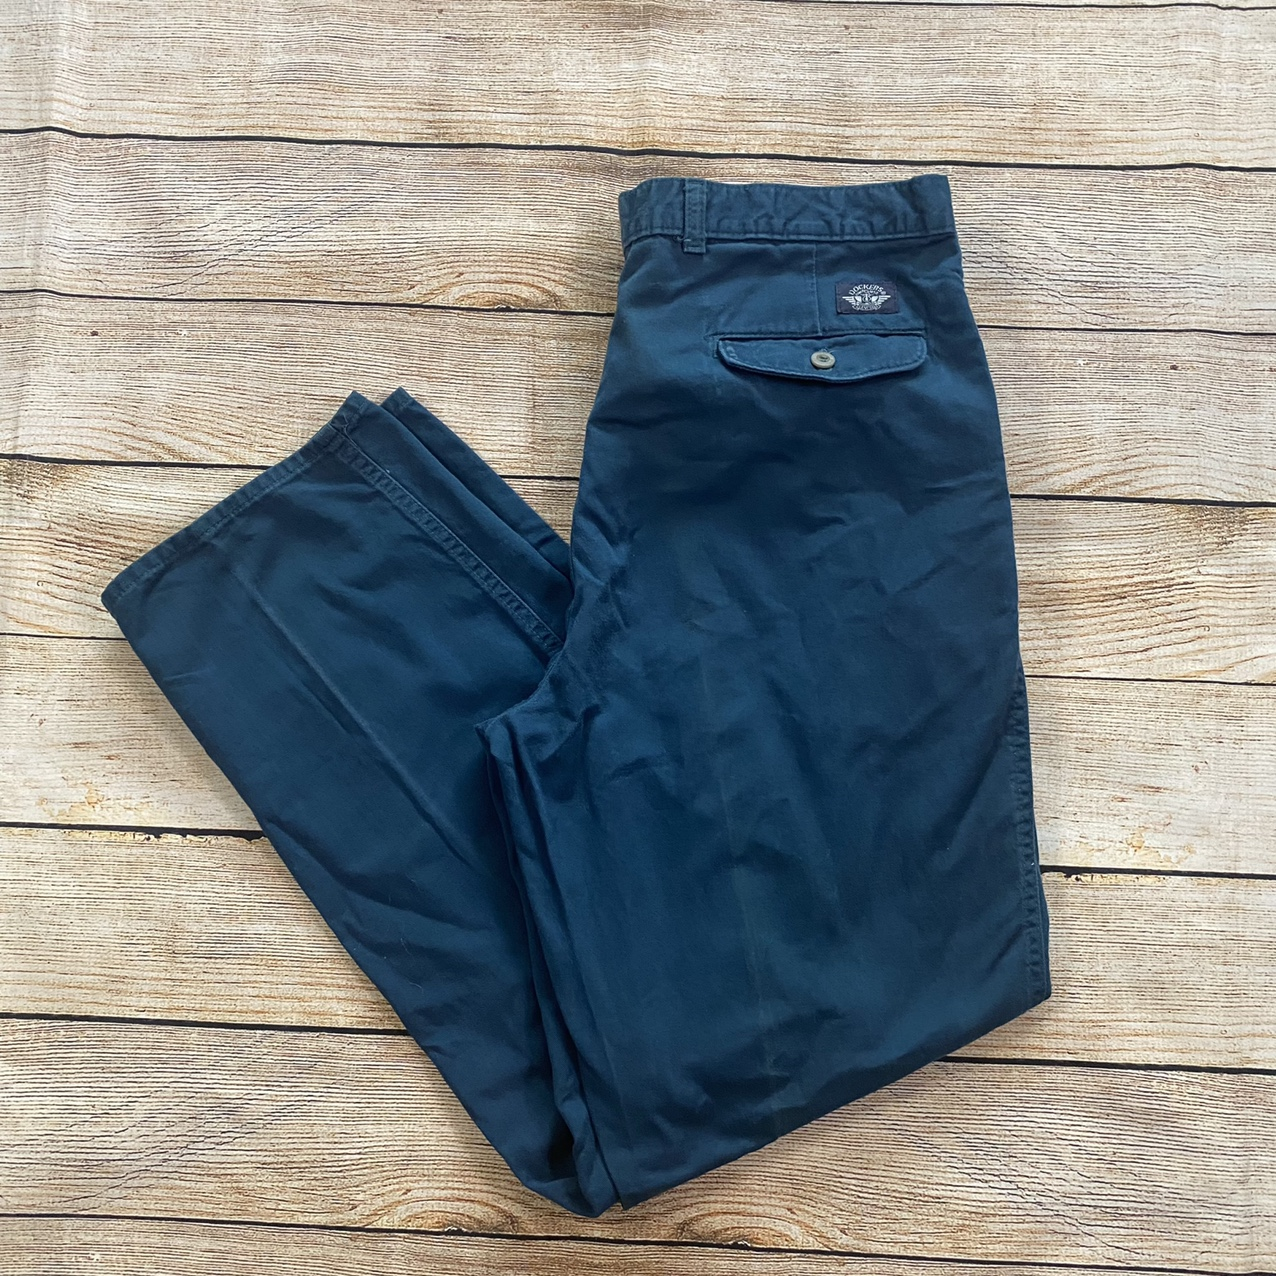 Product Image 1 - Vintage 1990's Dockers chino casual